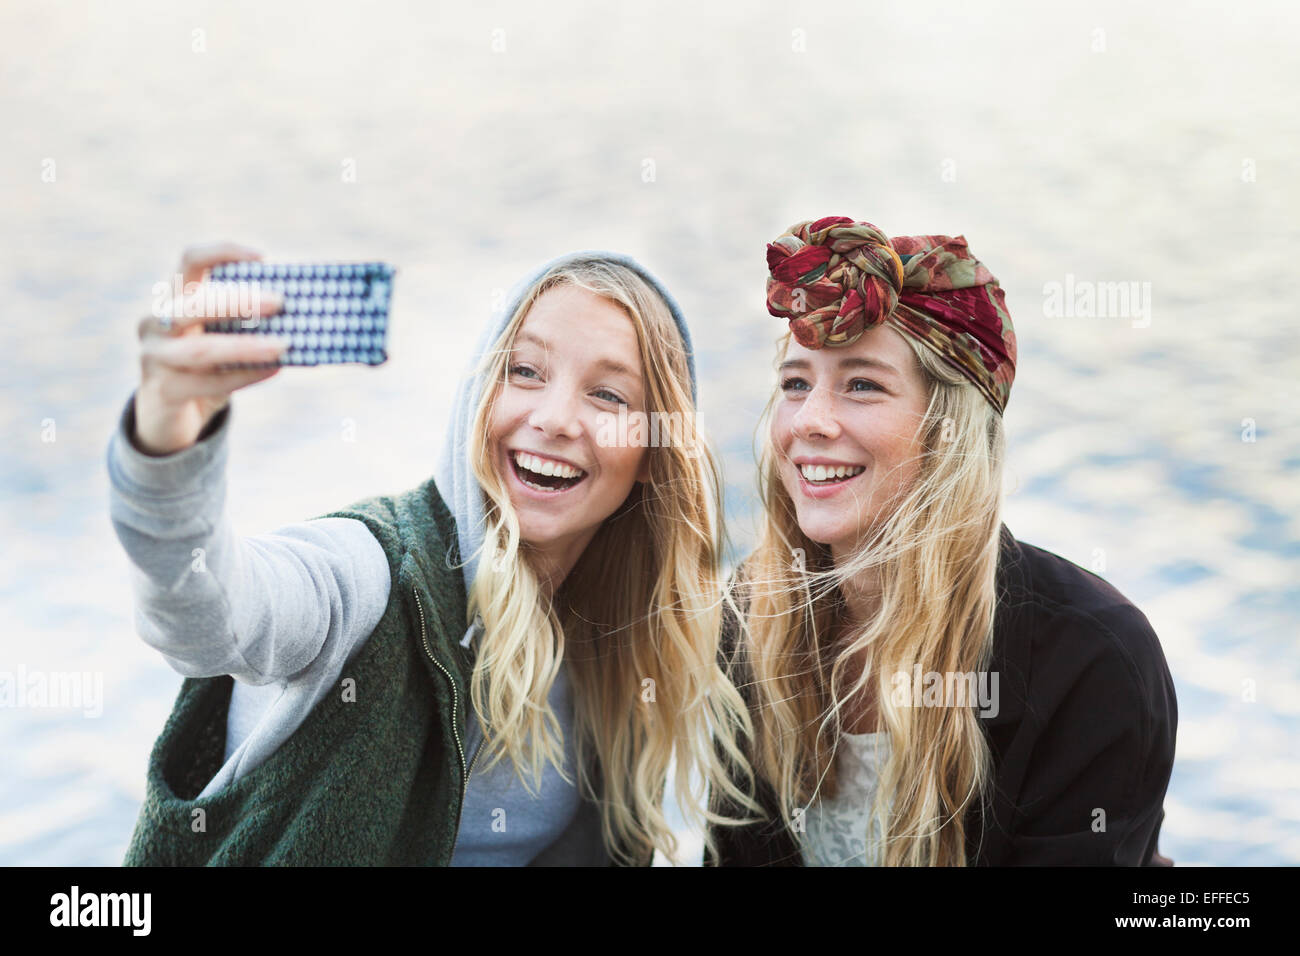 Happy female college students taking selfie through mobile phone against river - Stock Image